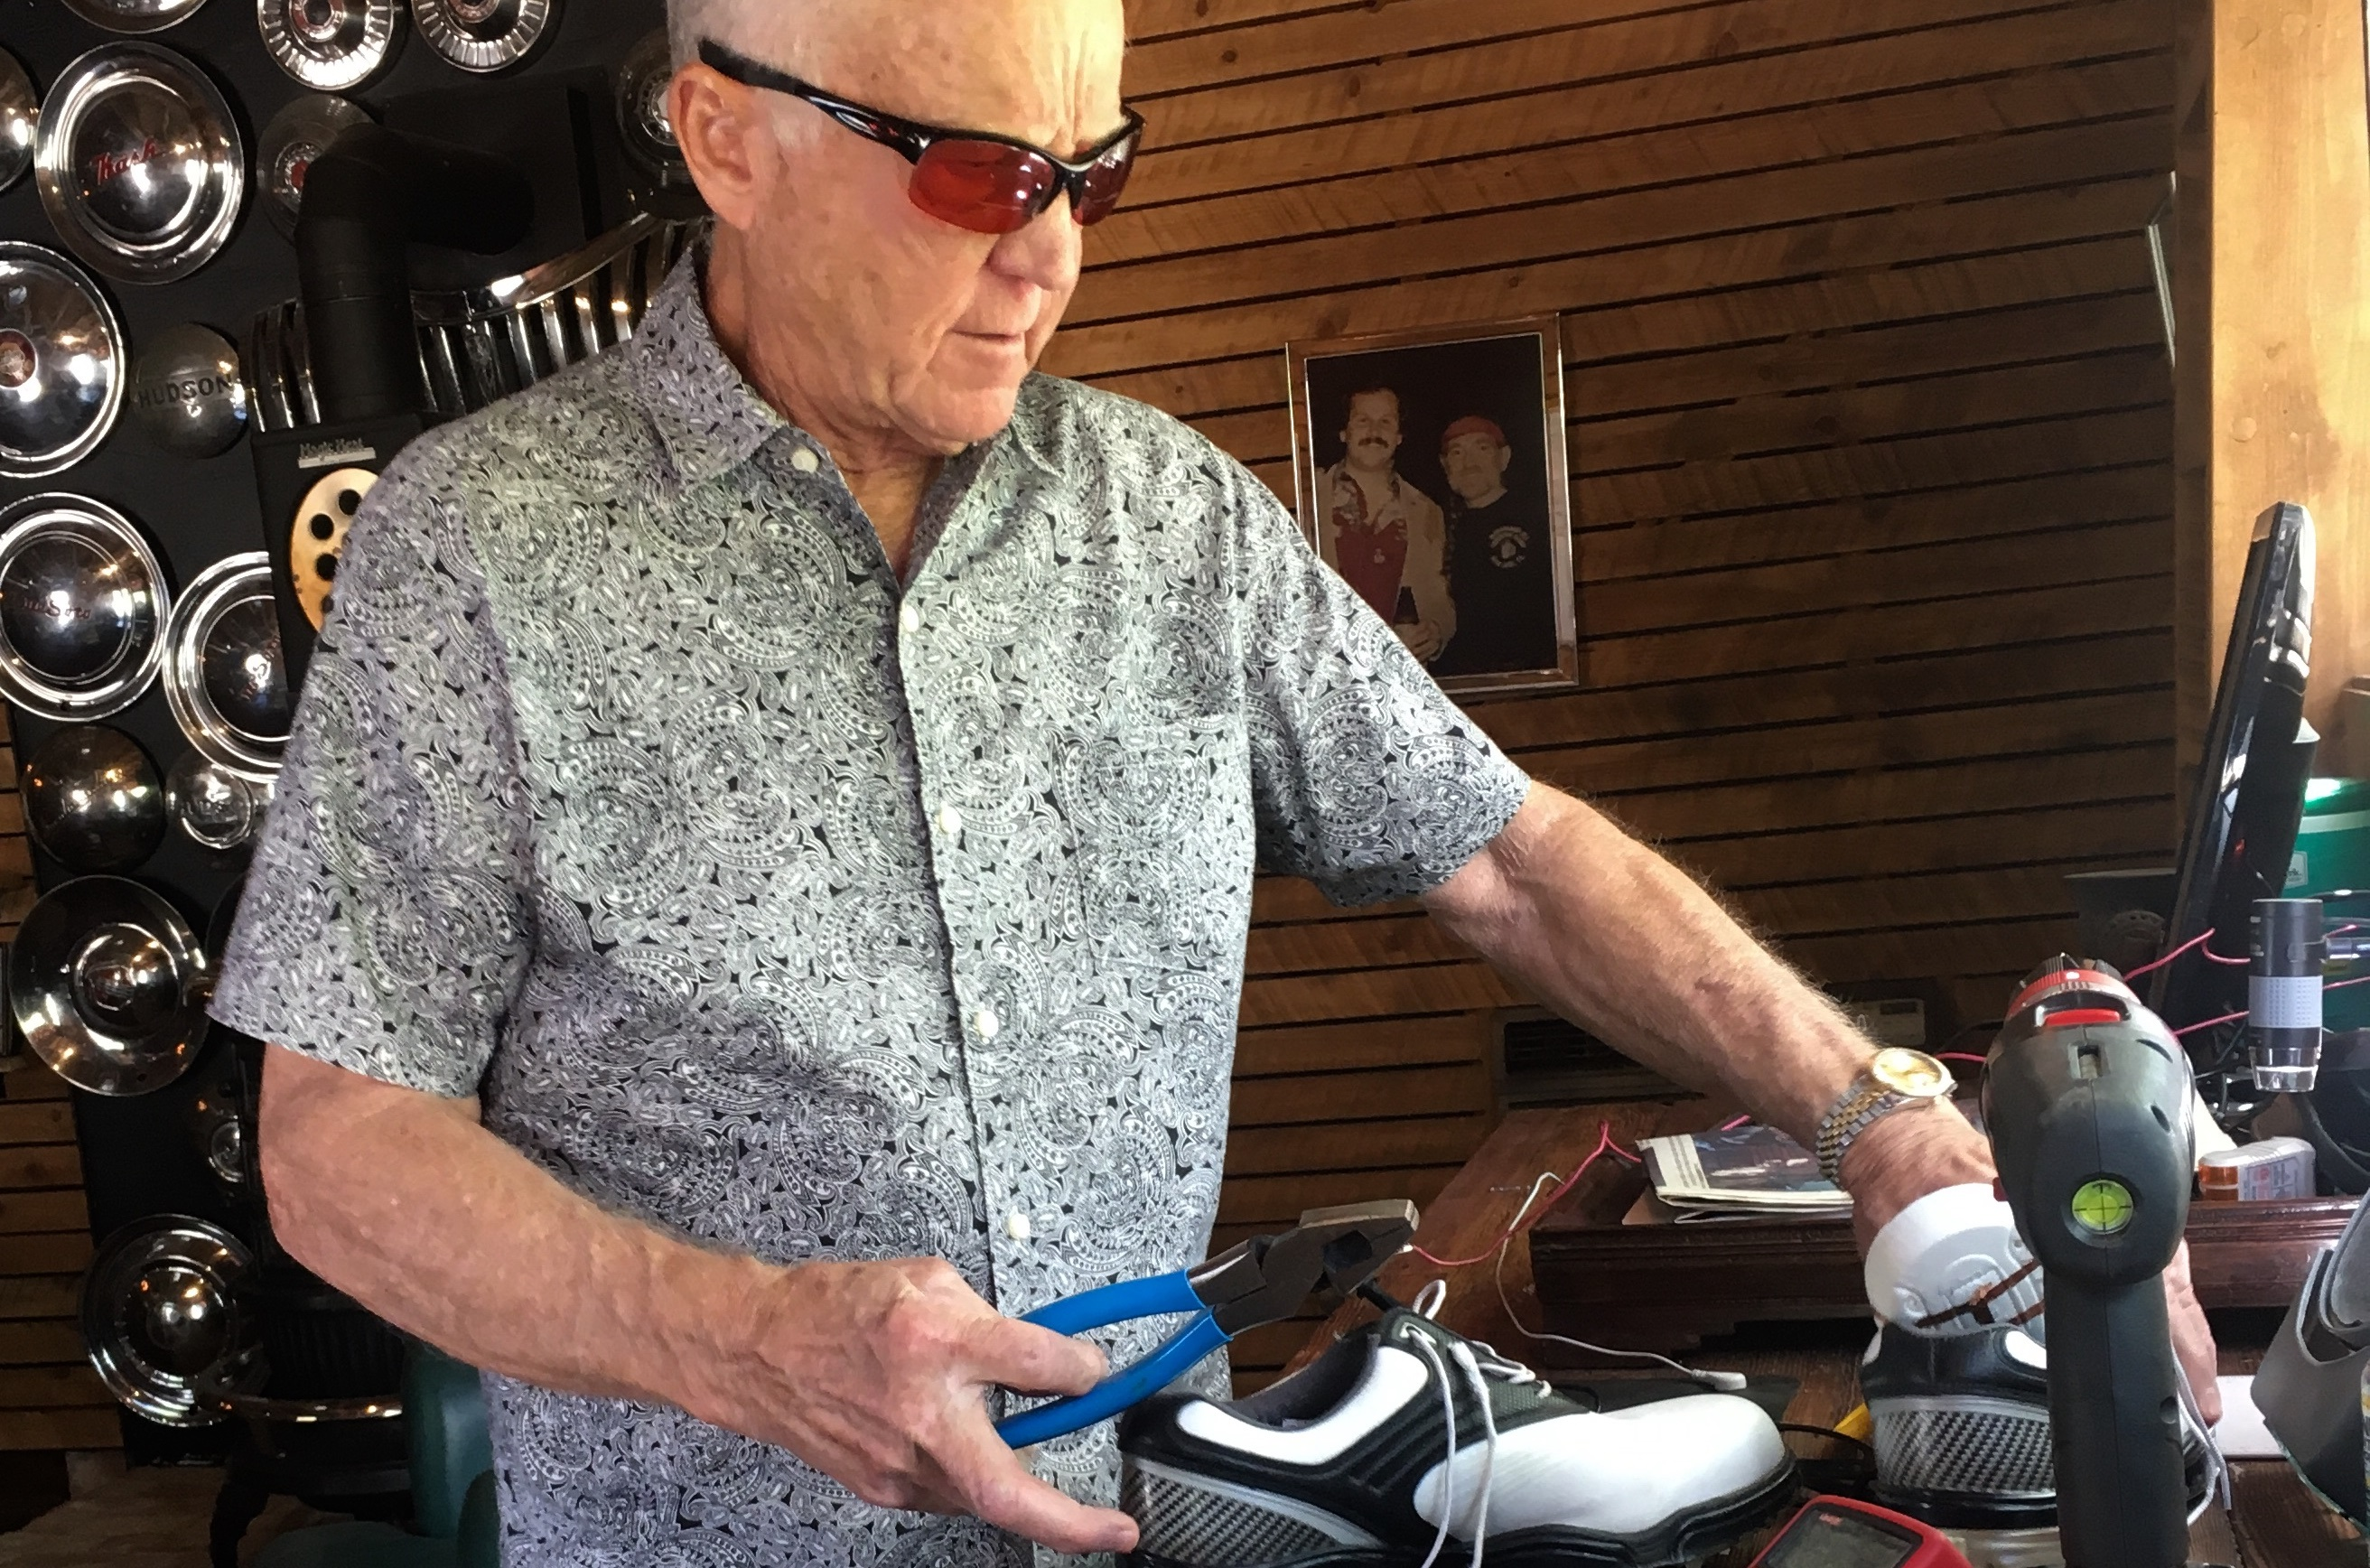 <p>Dr. Dick Fulton works on a new invention in his barn workshop.</p>